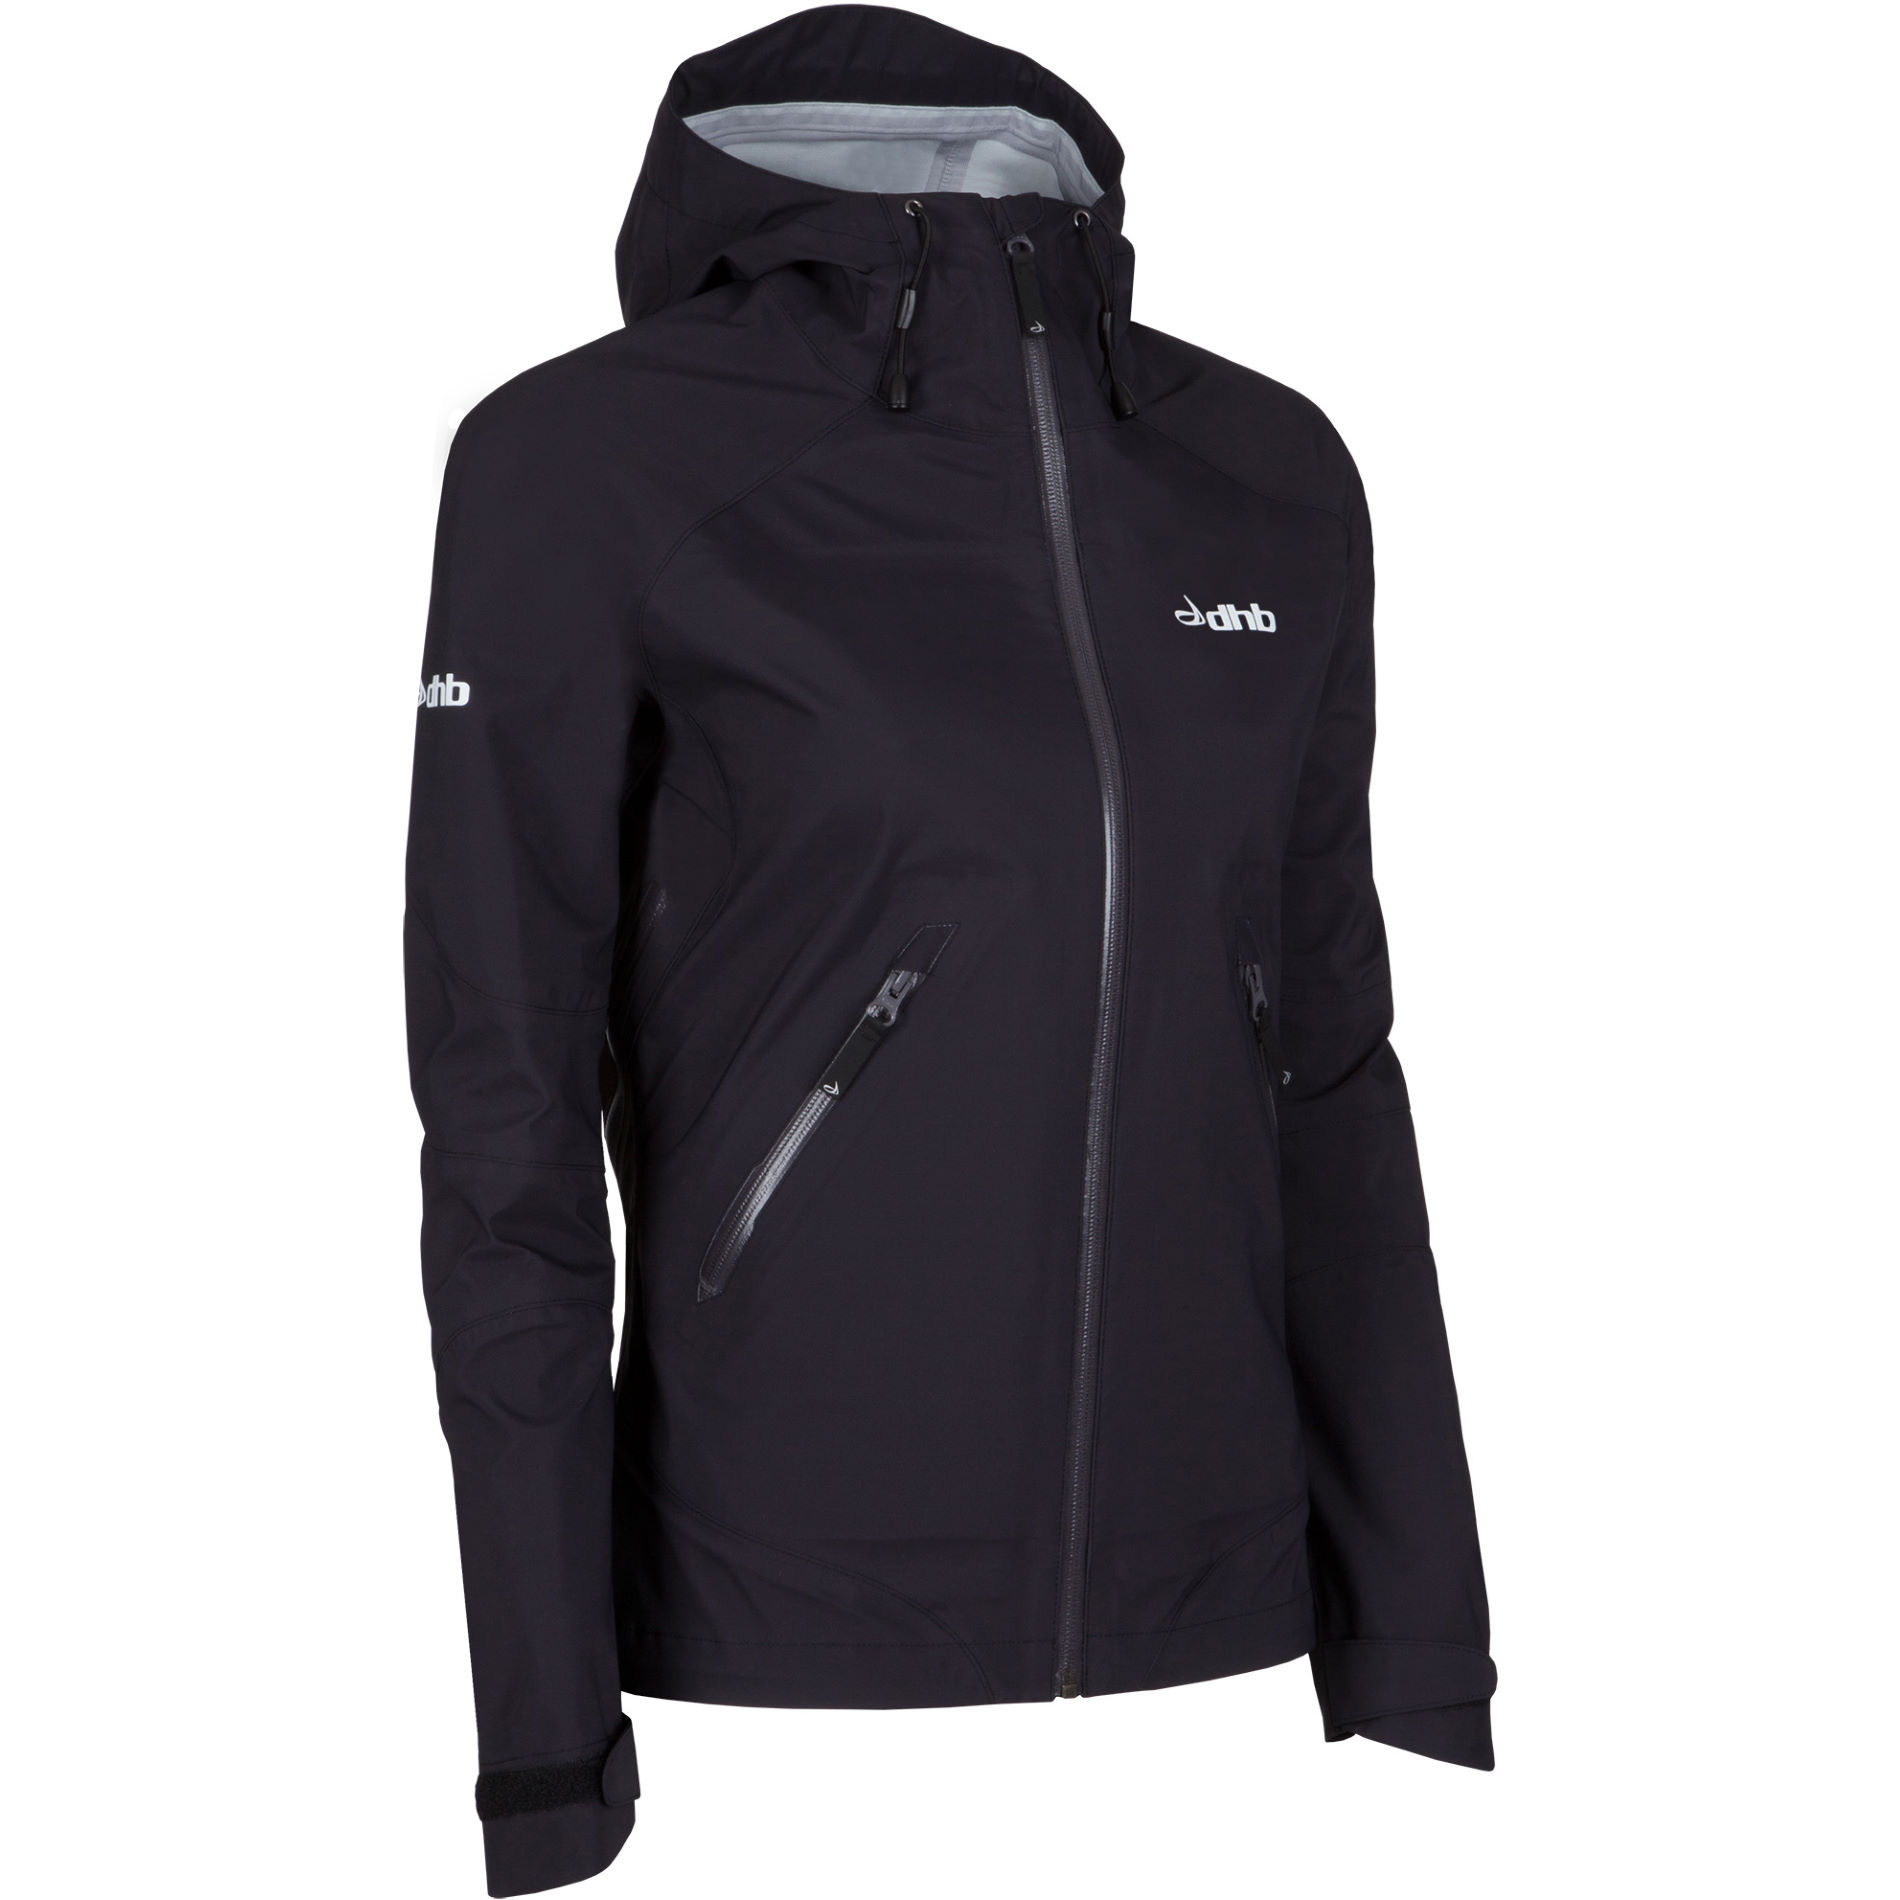 Wiggle | dhb Women&39s Casual Waterproof Jacket | Cycling Waterproof